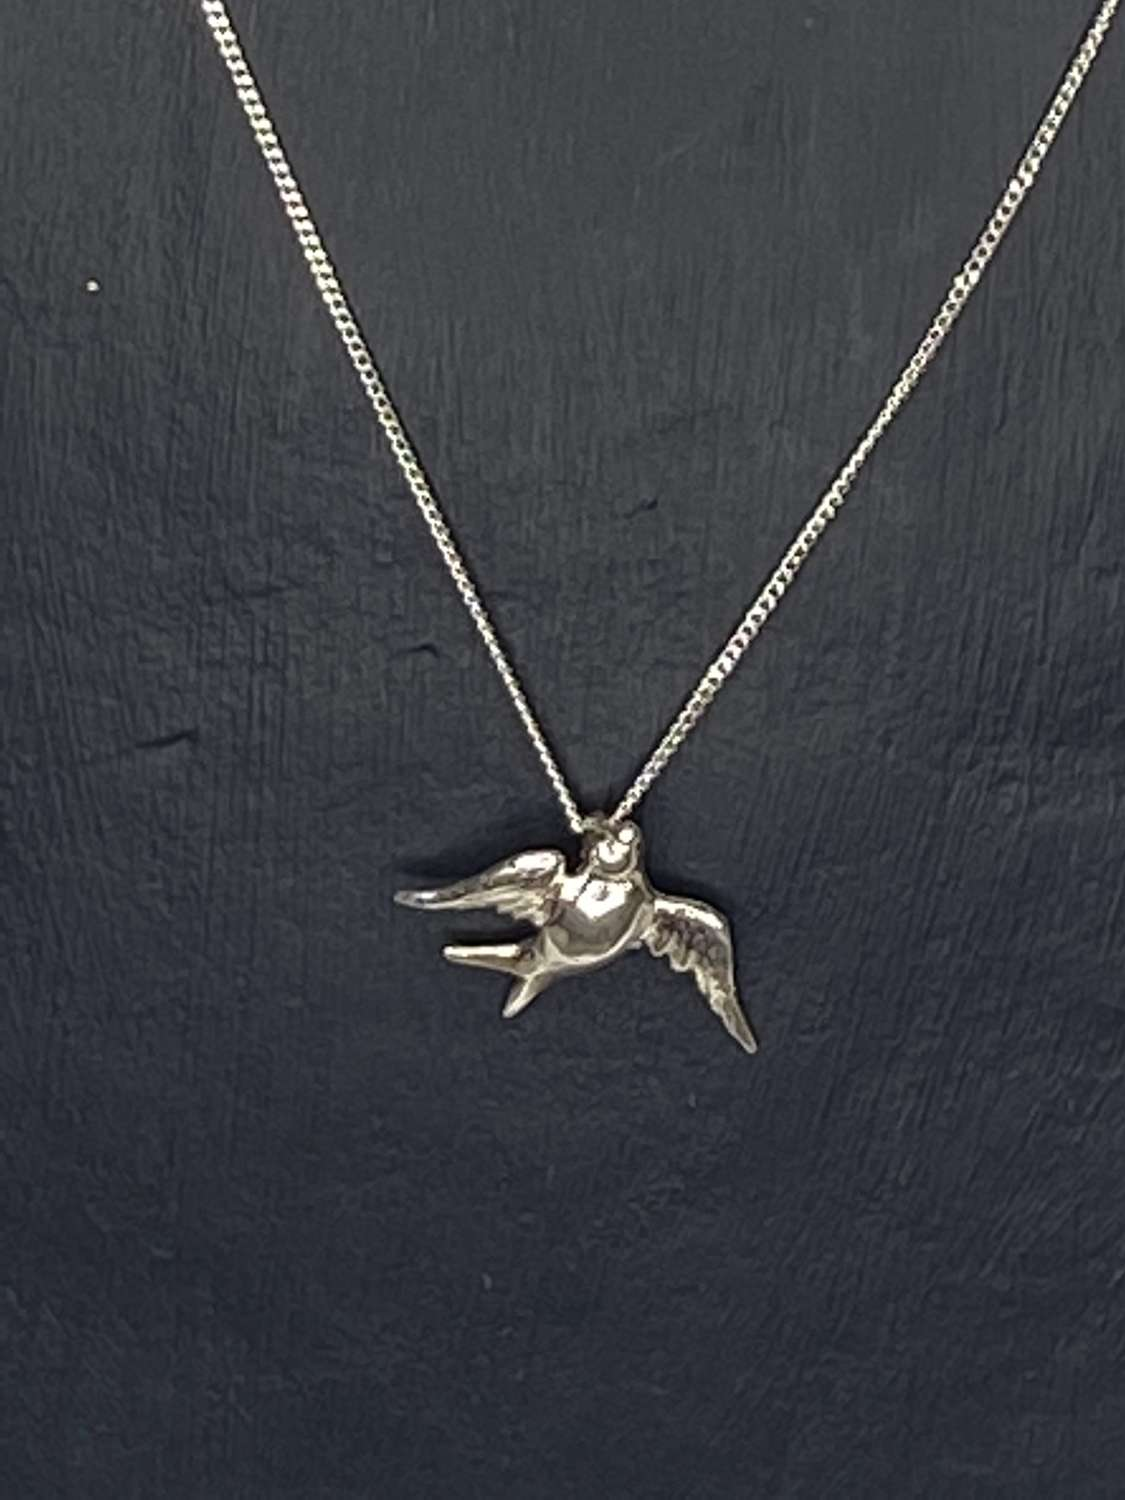 Stirling silver necklace - Swallow pendant